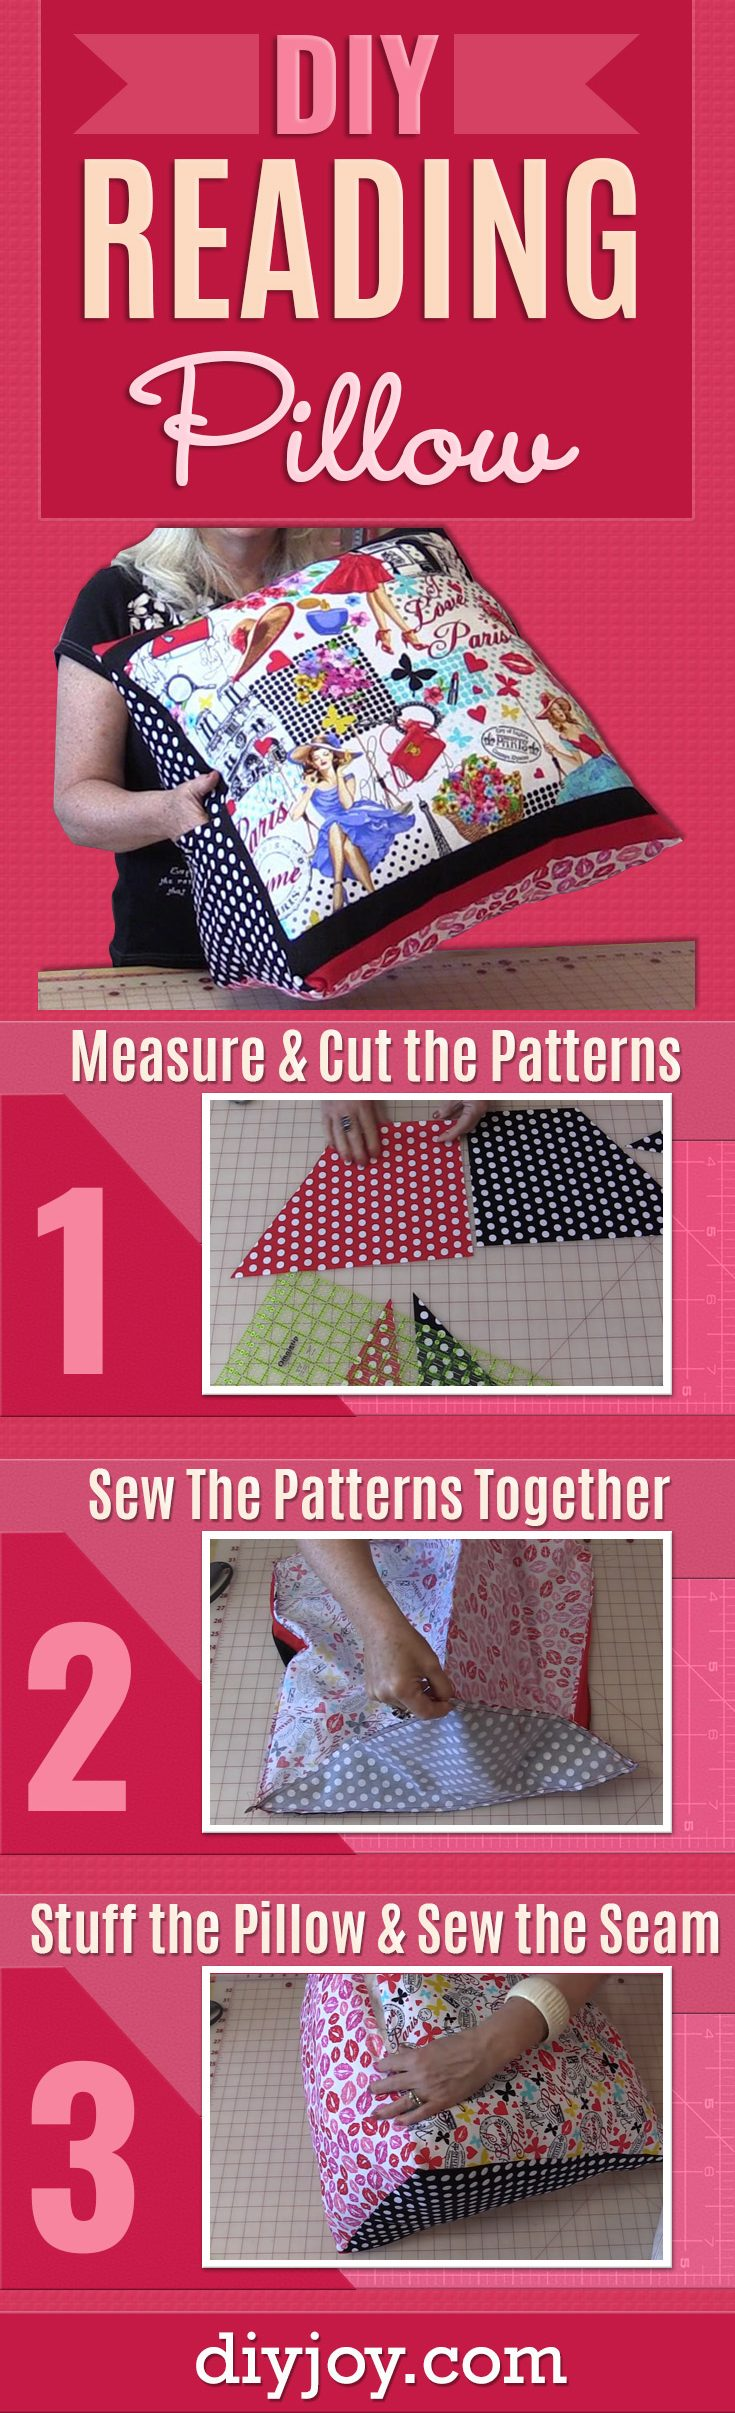 Sewing Tutorial : Back Pillow for Reading or TV Watching